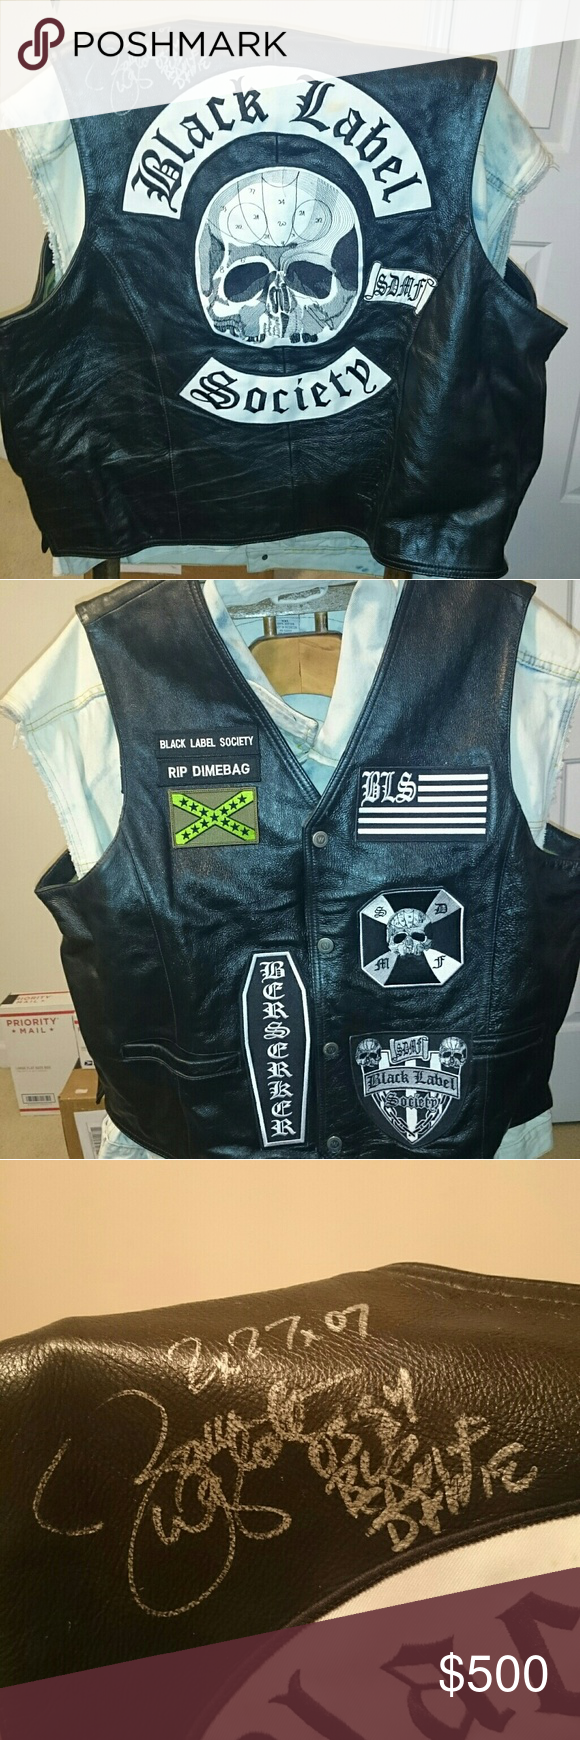 Zakk Wylde Autographed Black Label Society Vest Black Label Society Black Leather Vest